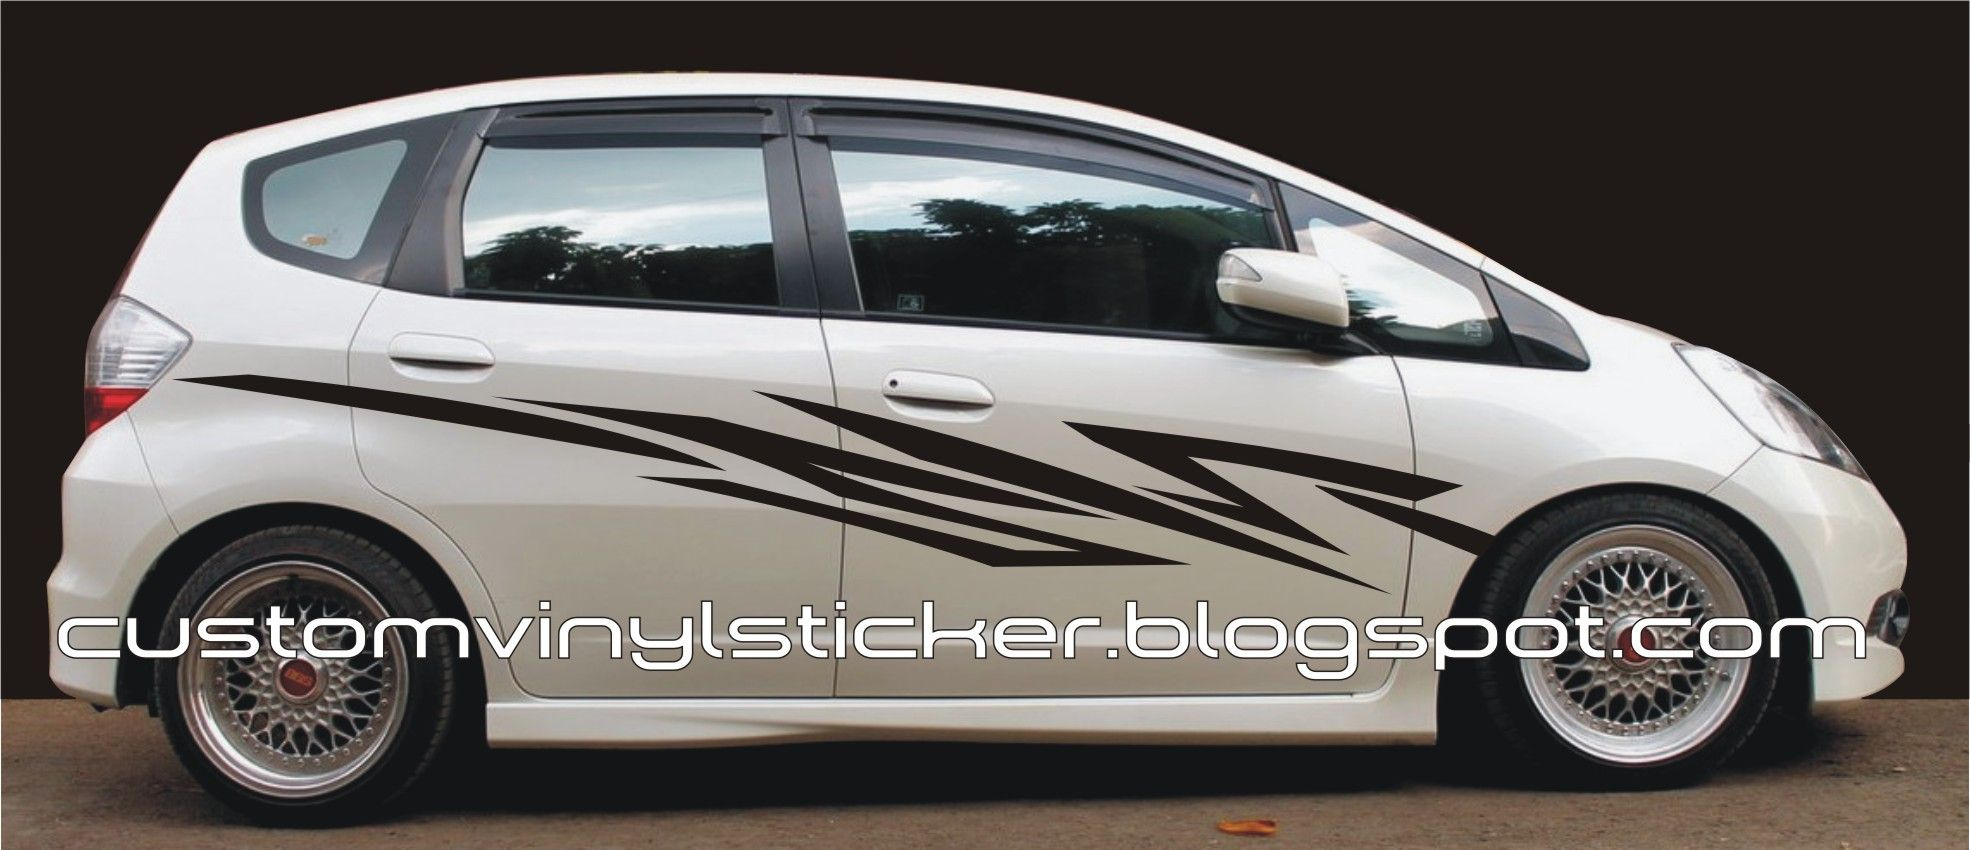 Car sticker design pinterest - Honda Jazz Rs White Sporty Black Striping Sticker Concept